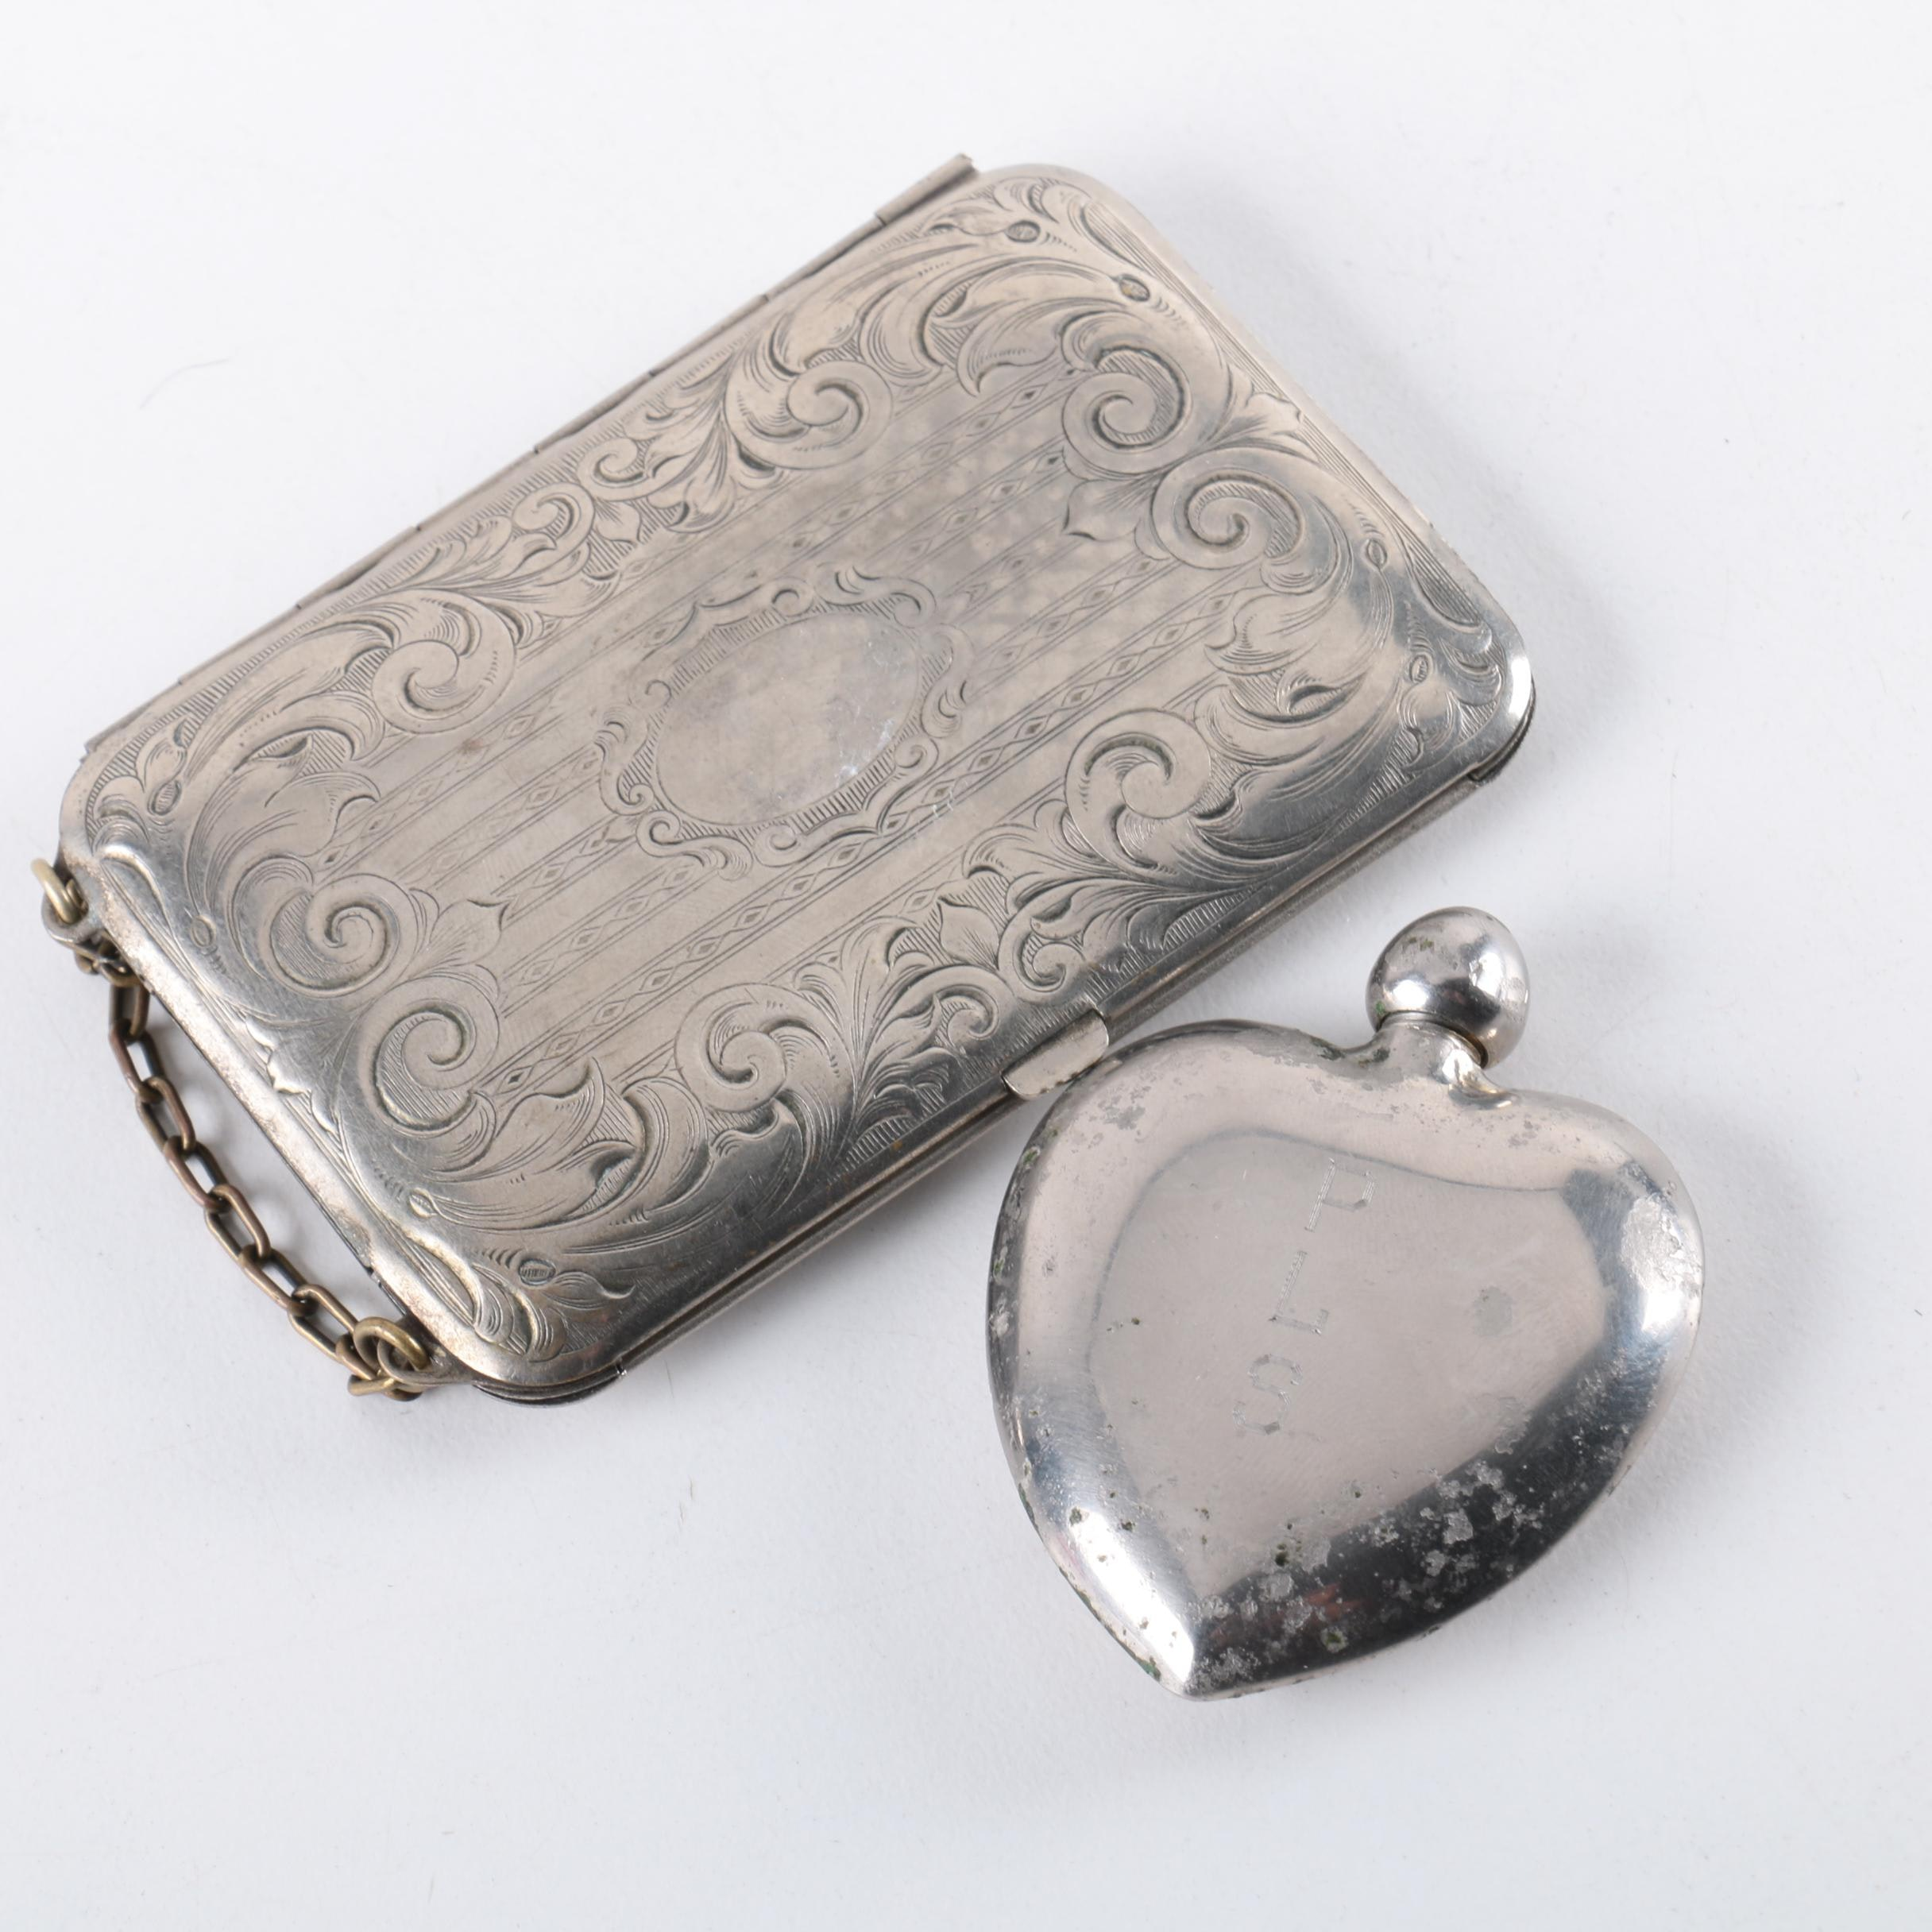 Vintage Silver Plate Coin Purse and Heart Perfume Bottle